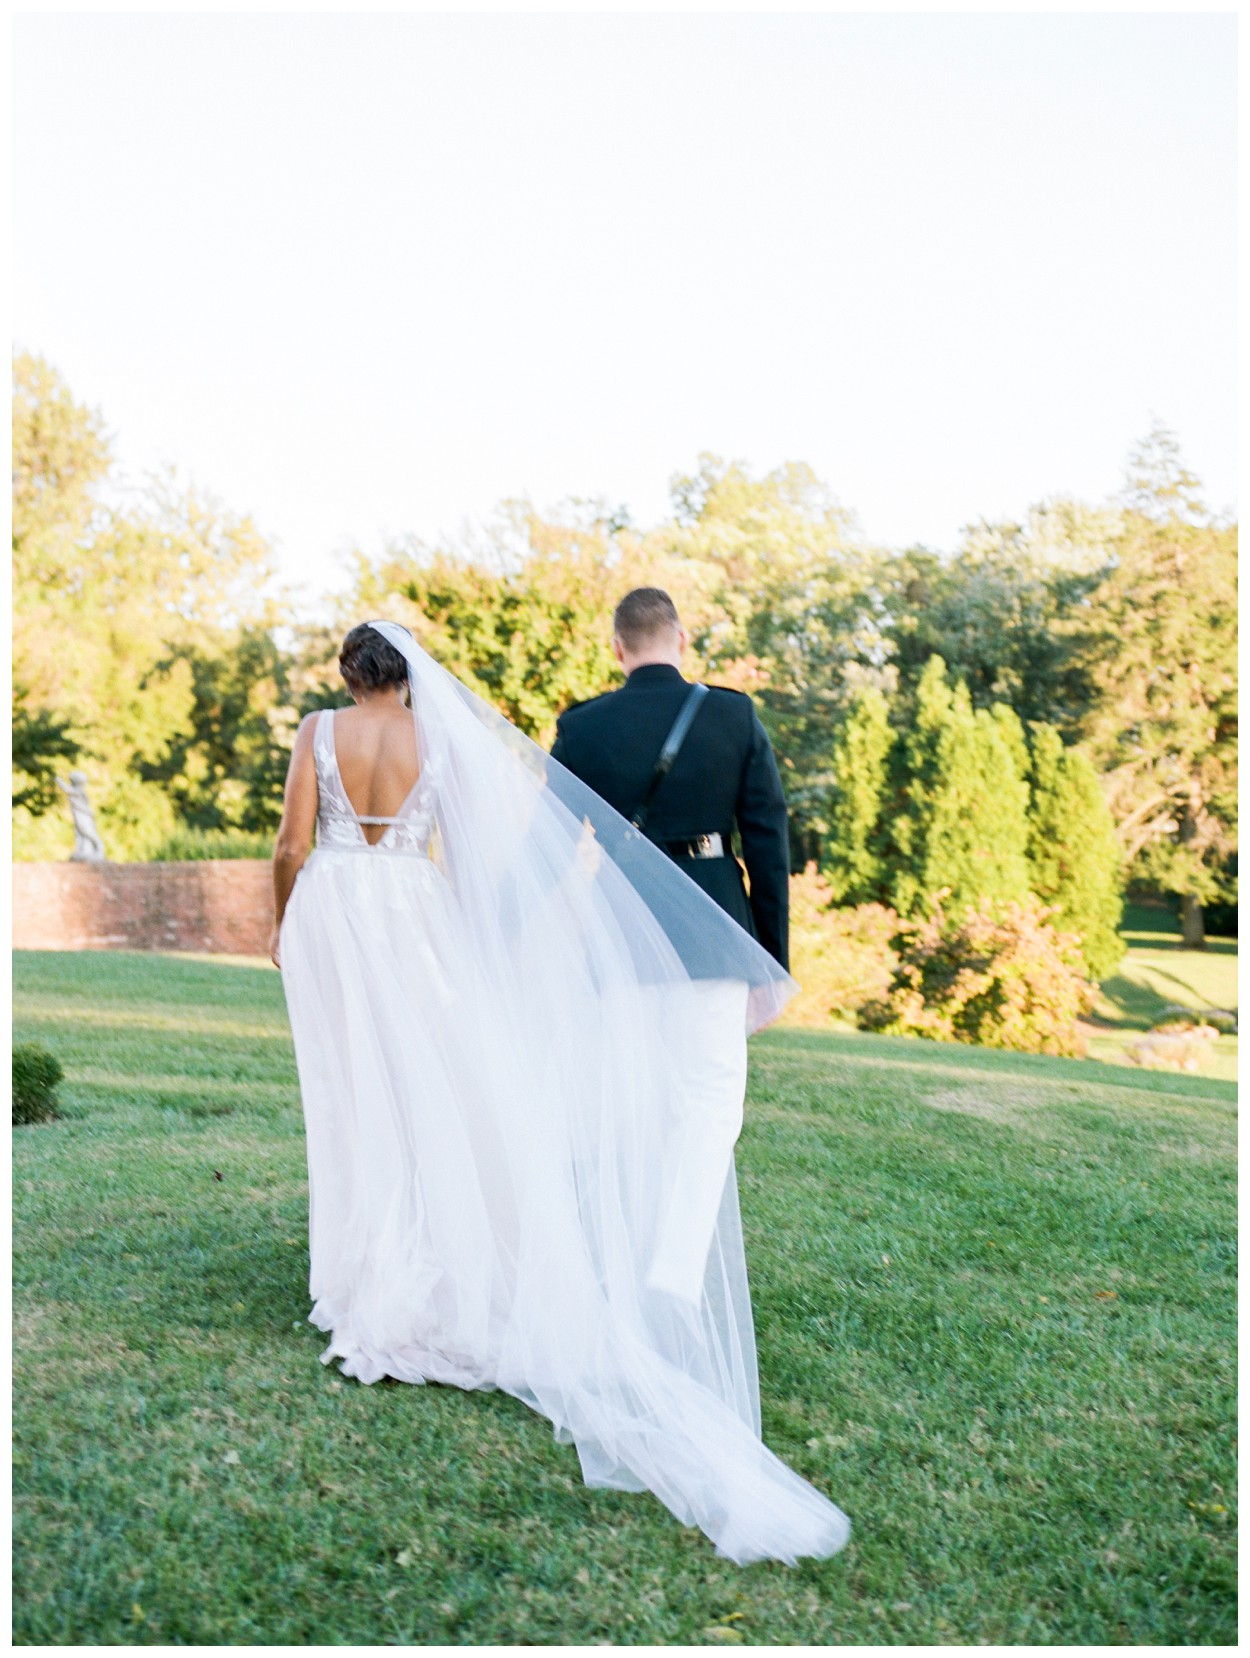 Sun drenched fall wedding in shades of pink at Oxon Hill Manor in Maryland sunset bride and groom portraits by Washington DC fine art photographer Lissa Ryan Photography